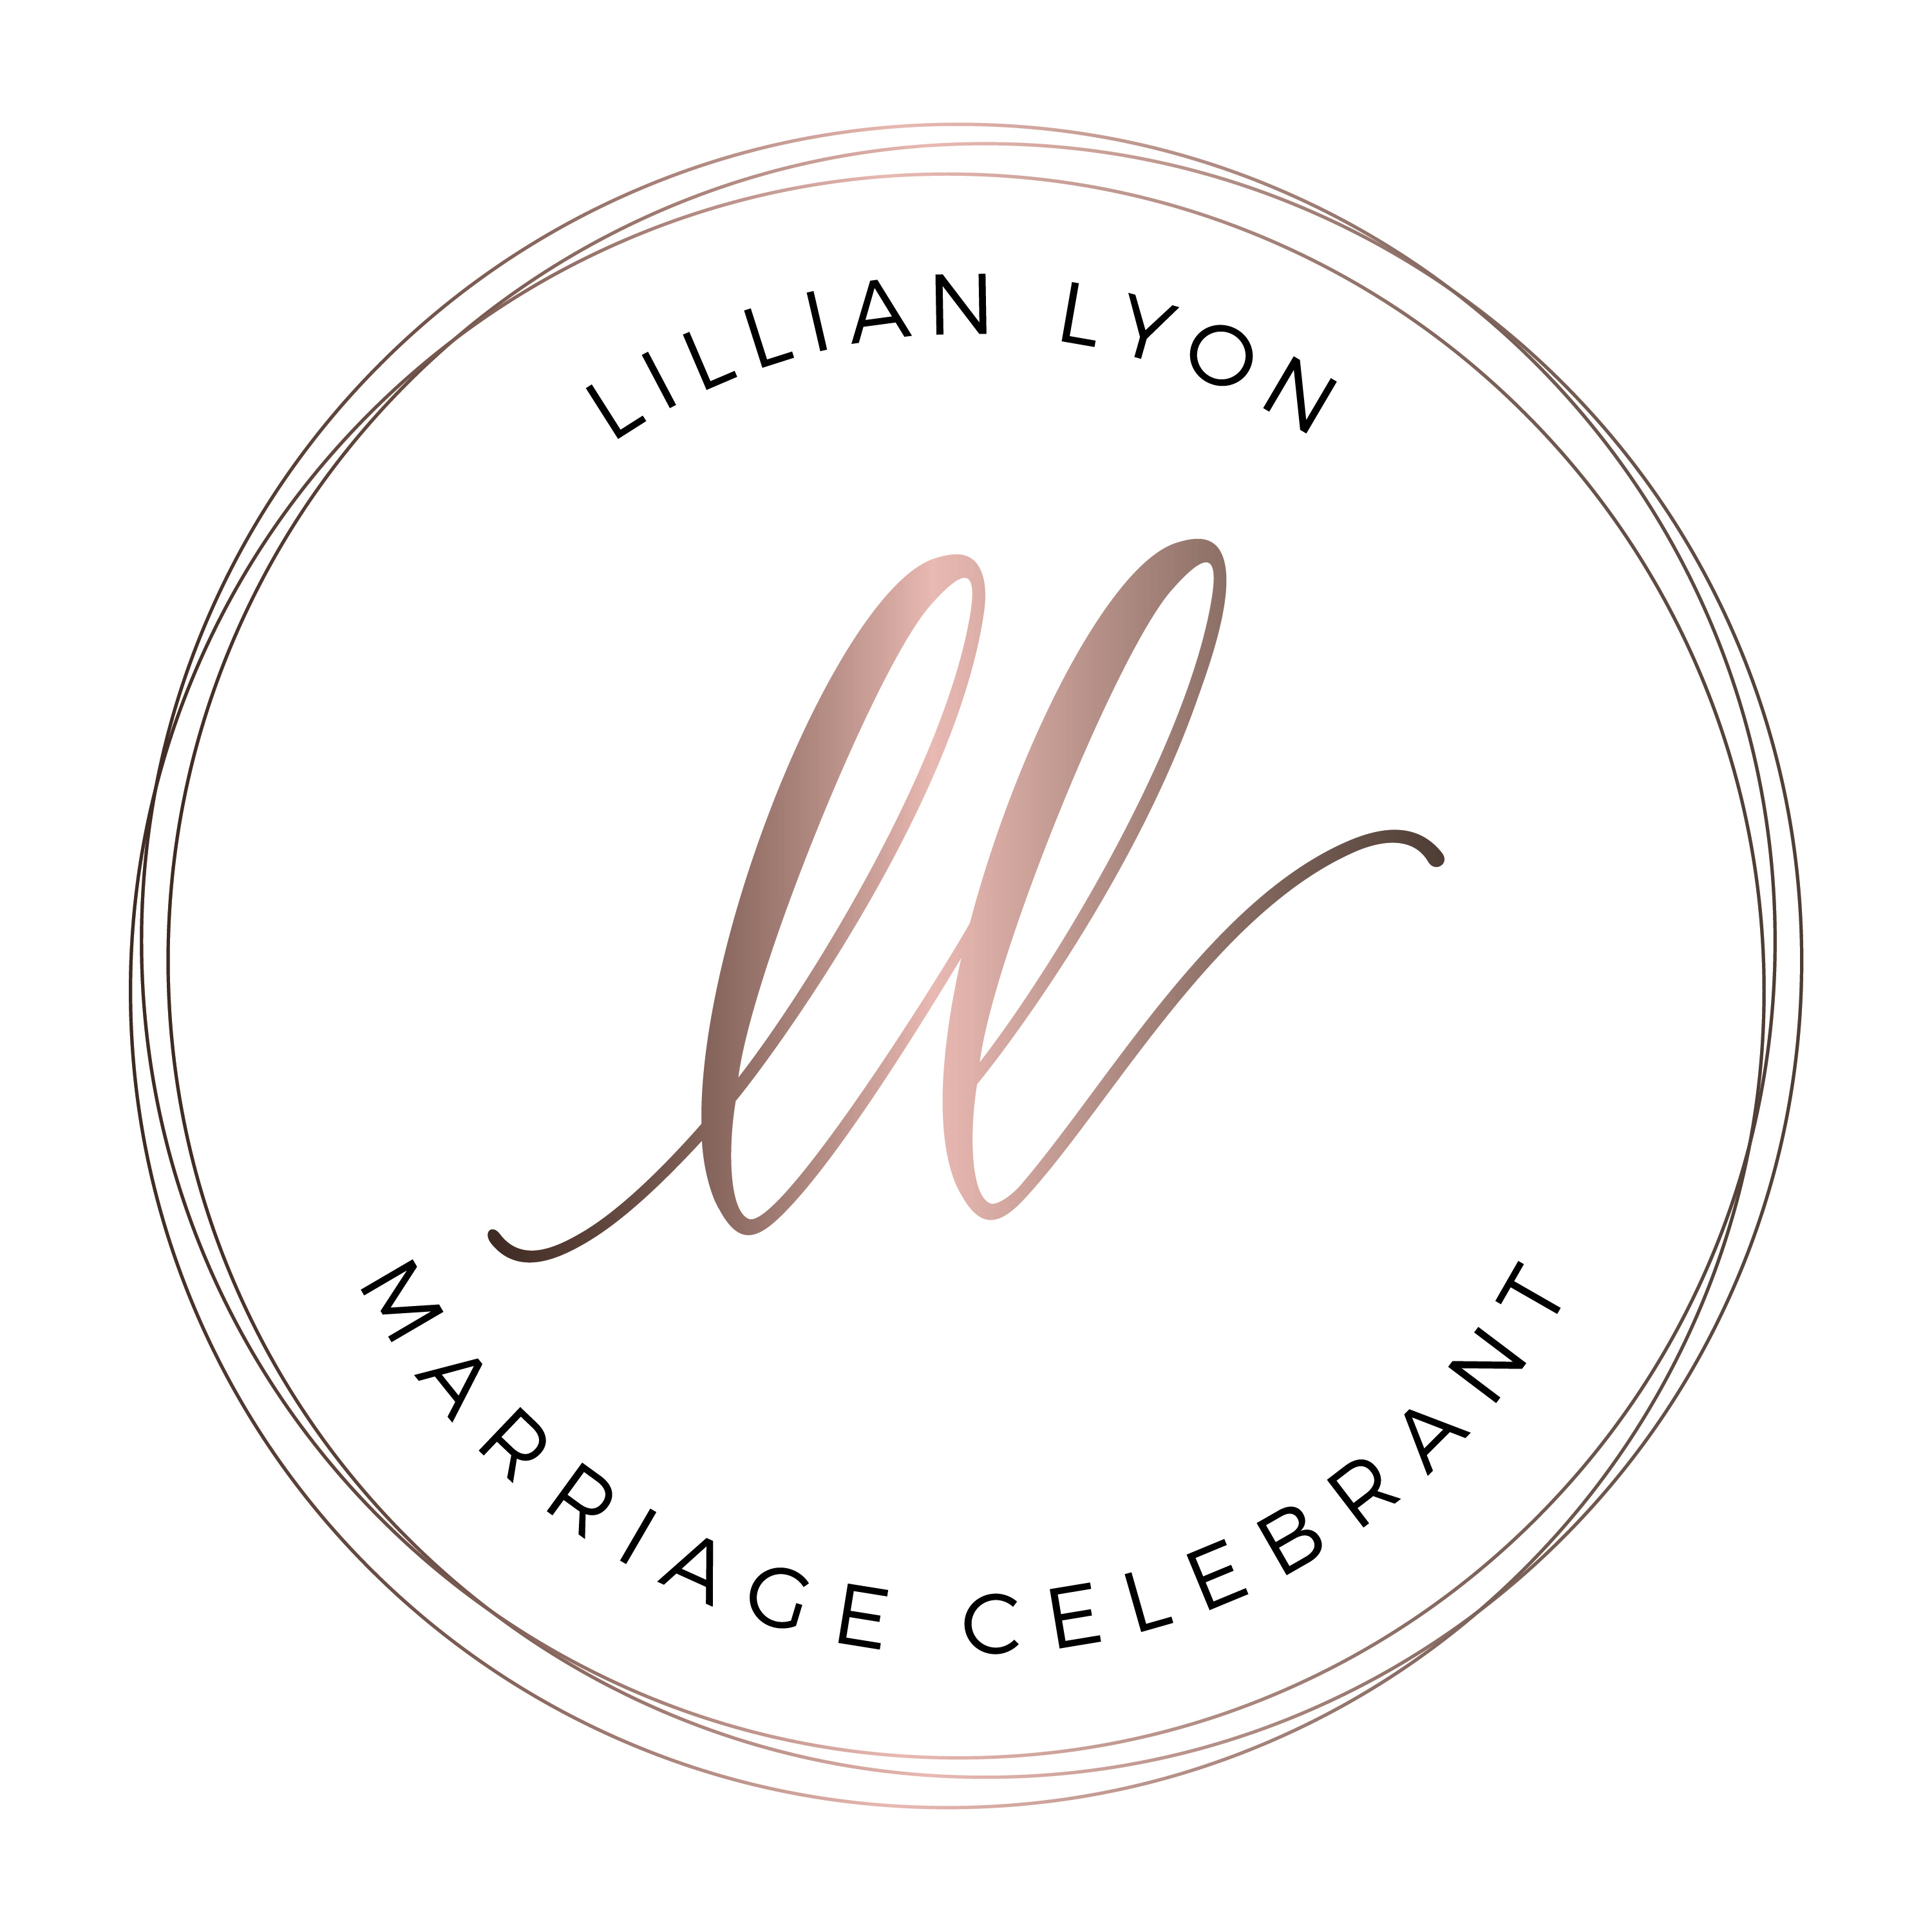 Lillian Lyon